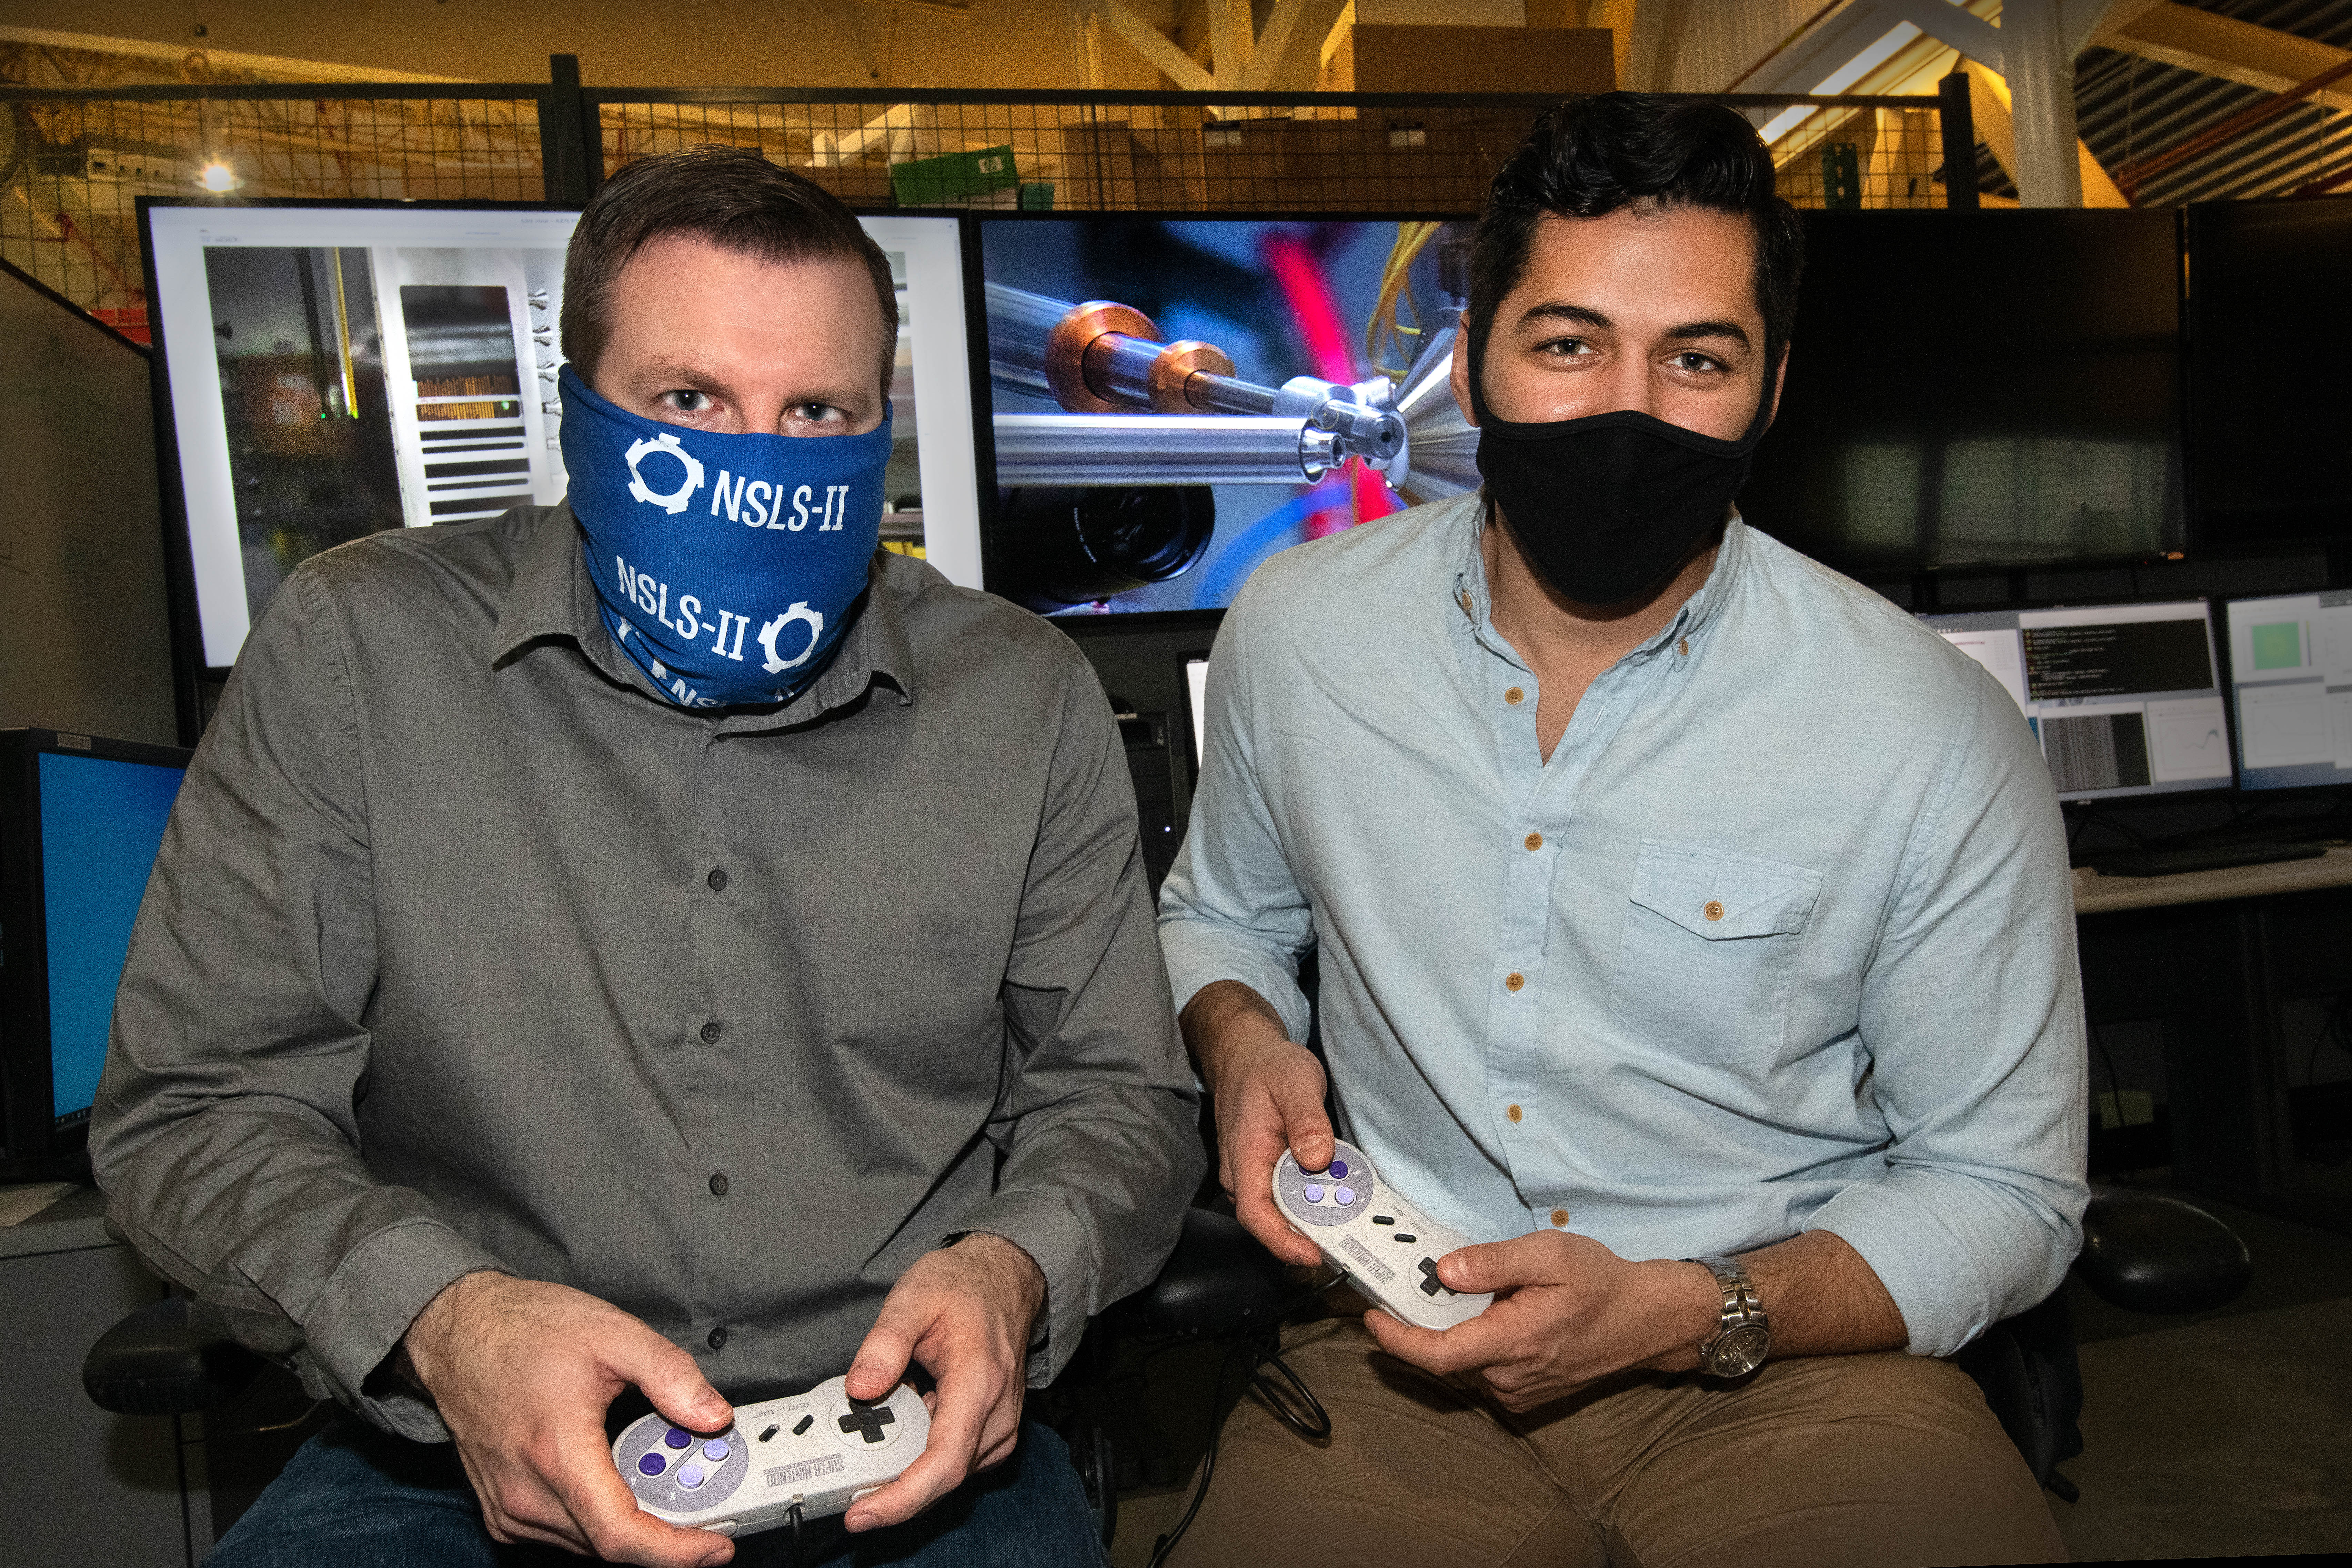 NSLS-II scientists, Daniel Olds (left) and Phillip Maffettone (right), are ready to let their AI agent level up the rate of discovery at NSLS-II's PDF beamline.